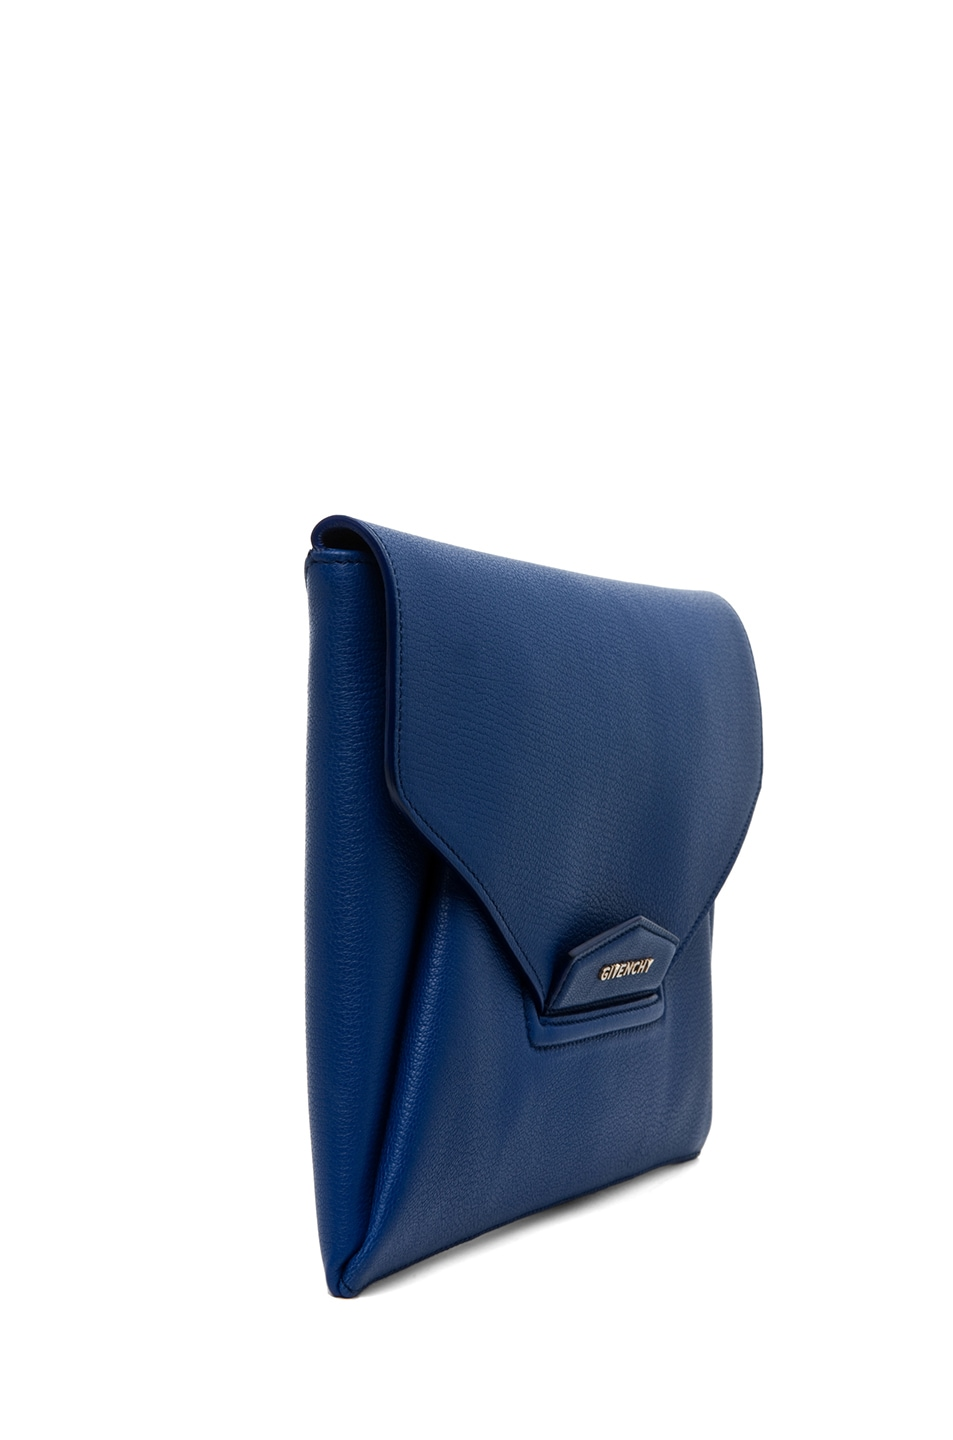 Image 3 of GIVENCHY Antigona Envelope Clutch in Moroccan Blue